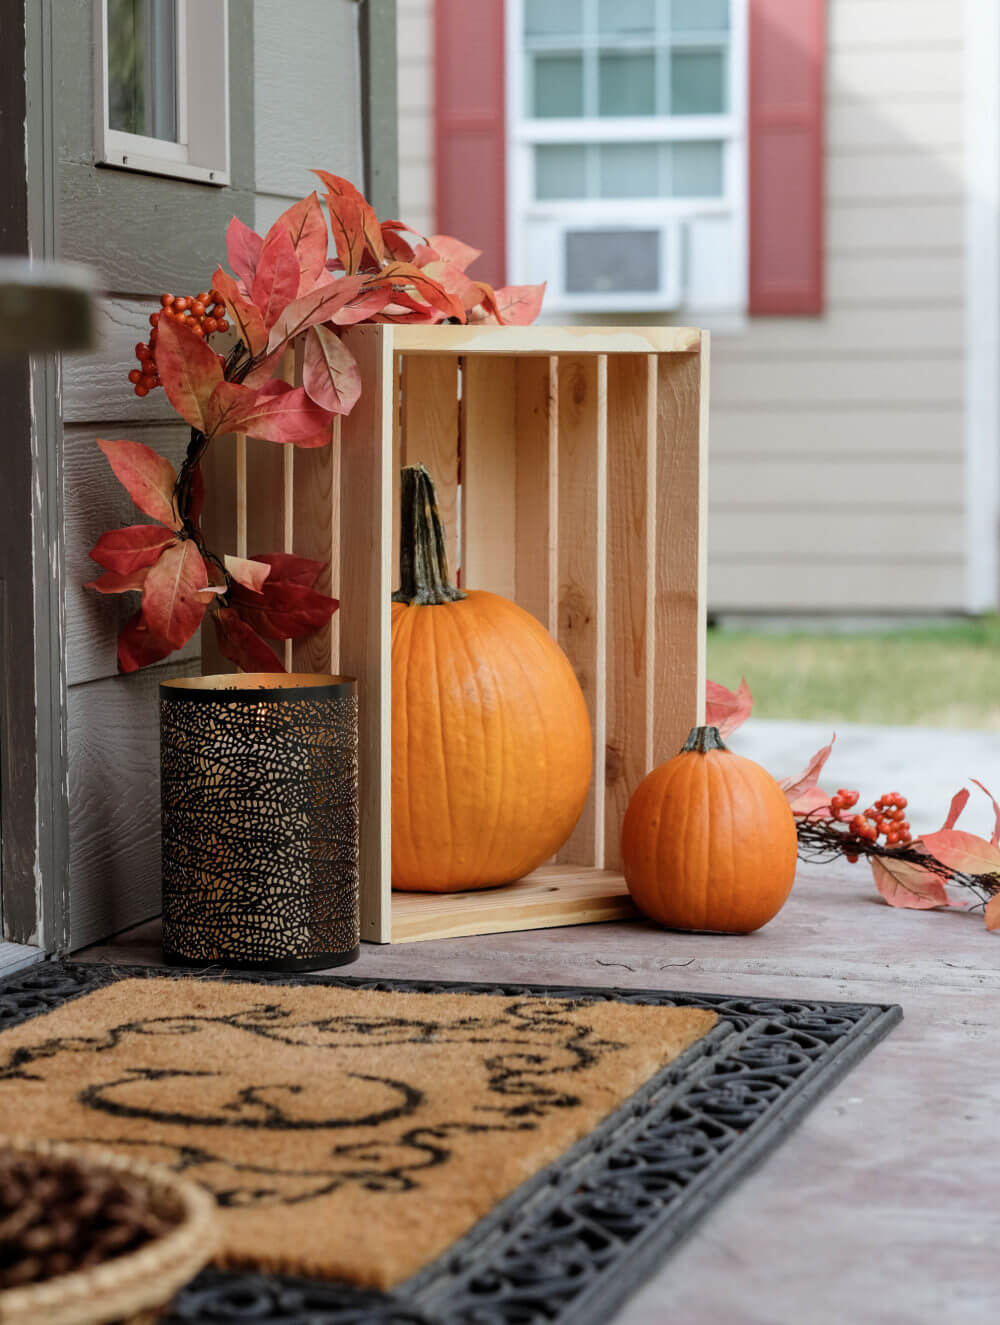 Wooden Crates as Fall Porch Decor